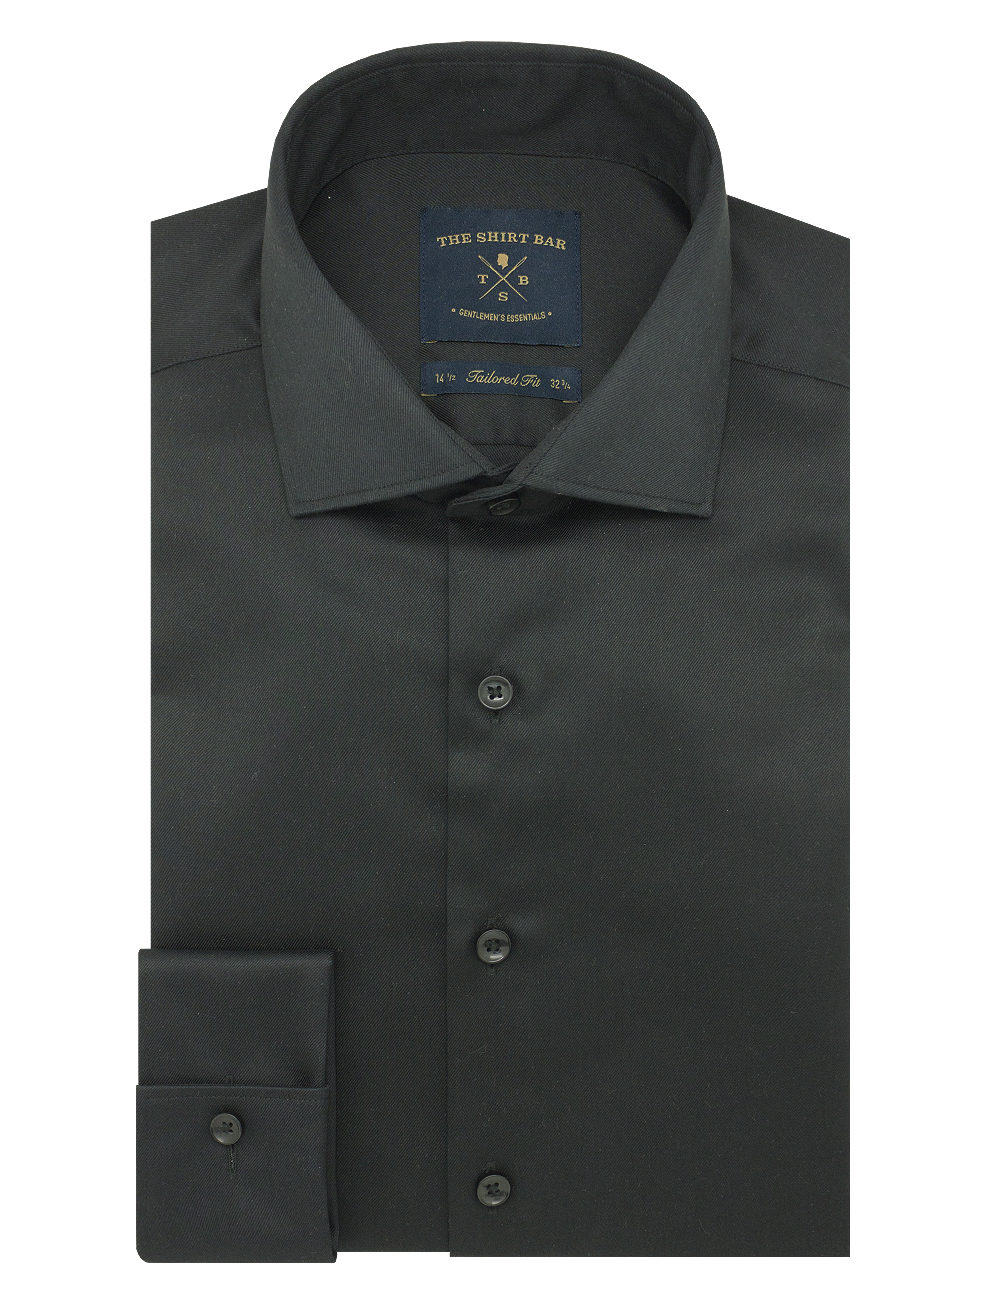 TF Solid Black Twill 100% Premium Cotton Easy Iron Double-Ply Long Sleeve Double Cuff Shirt TF3D4.16